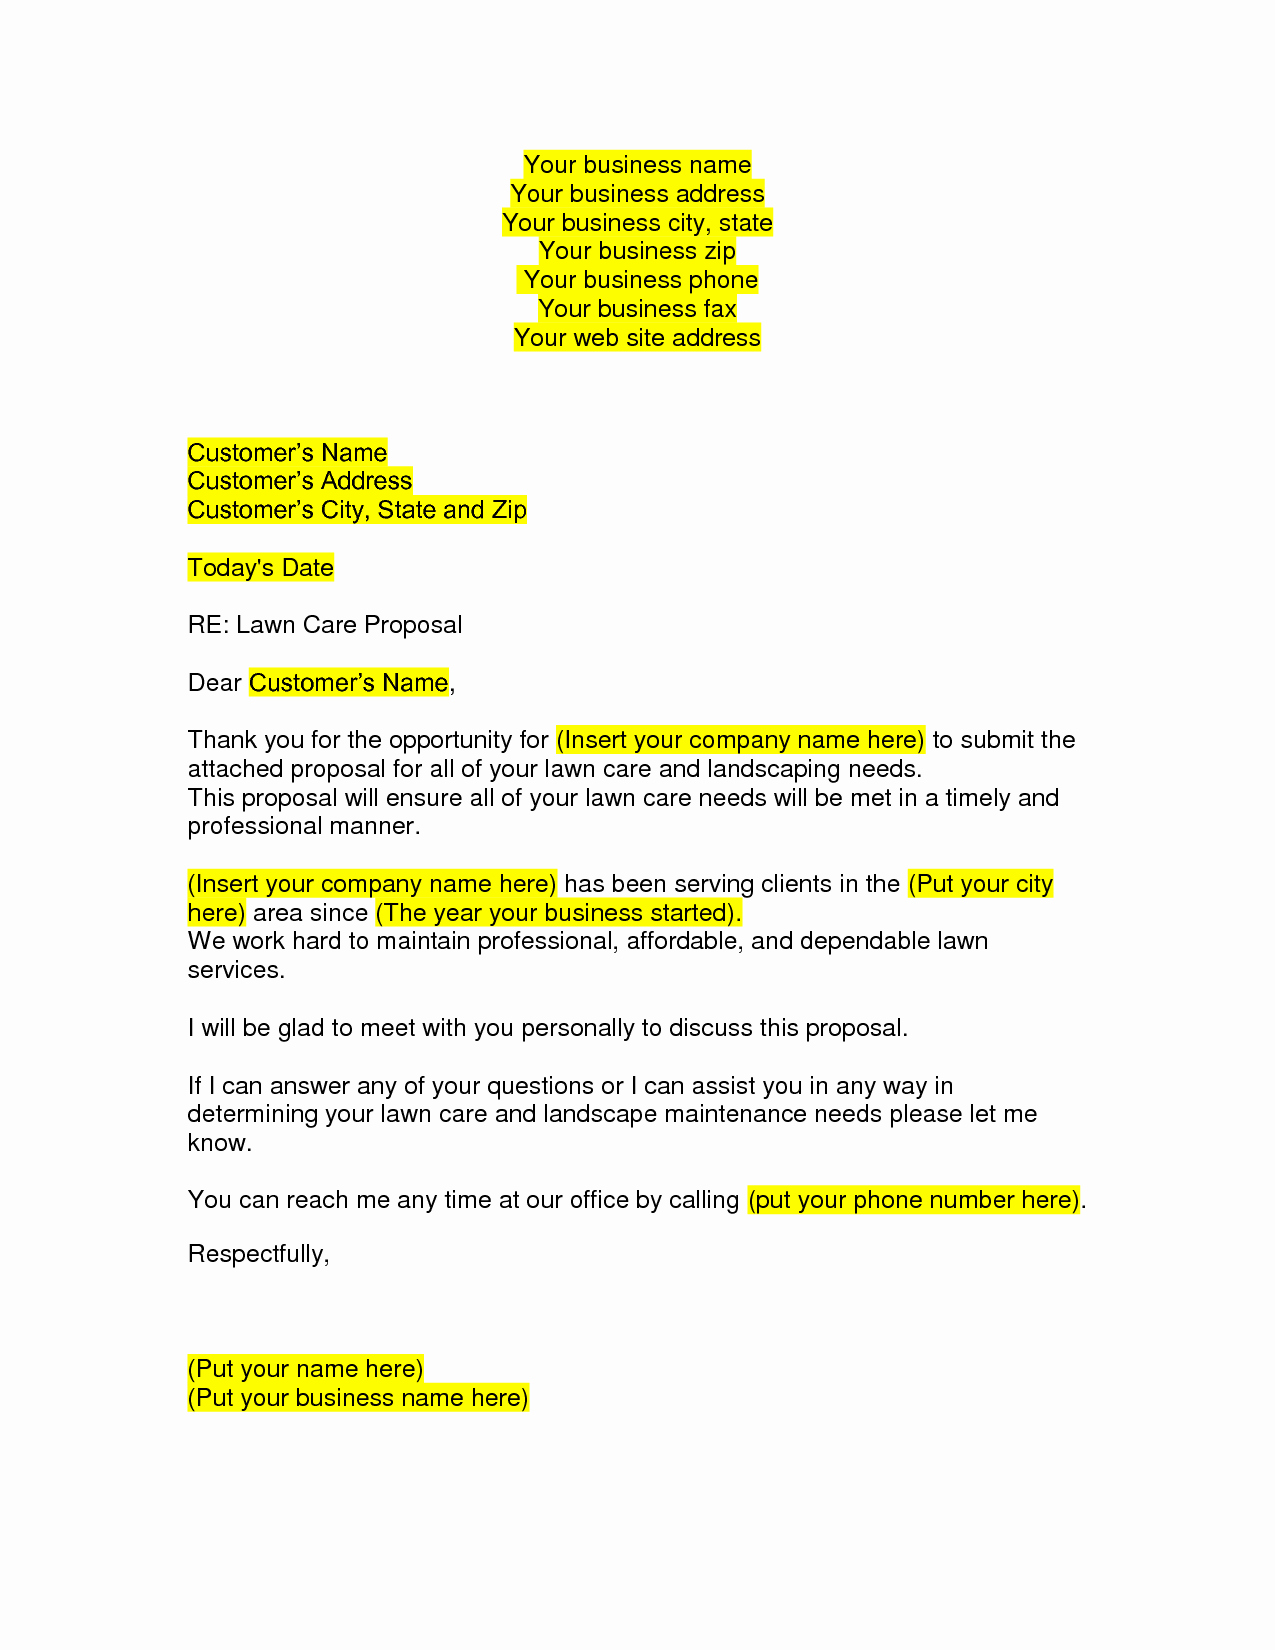 How to Write Business Proposal Letter Step by Step Example